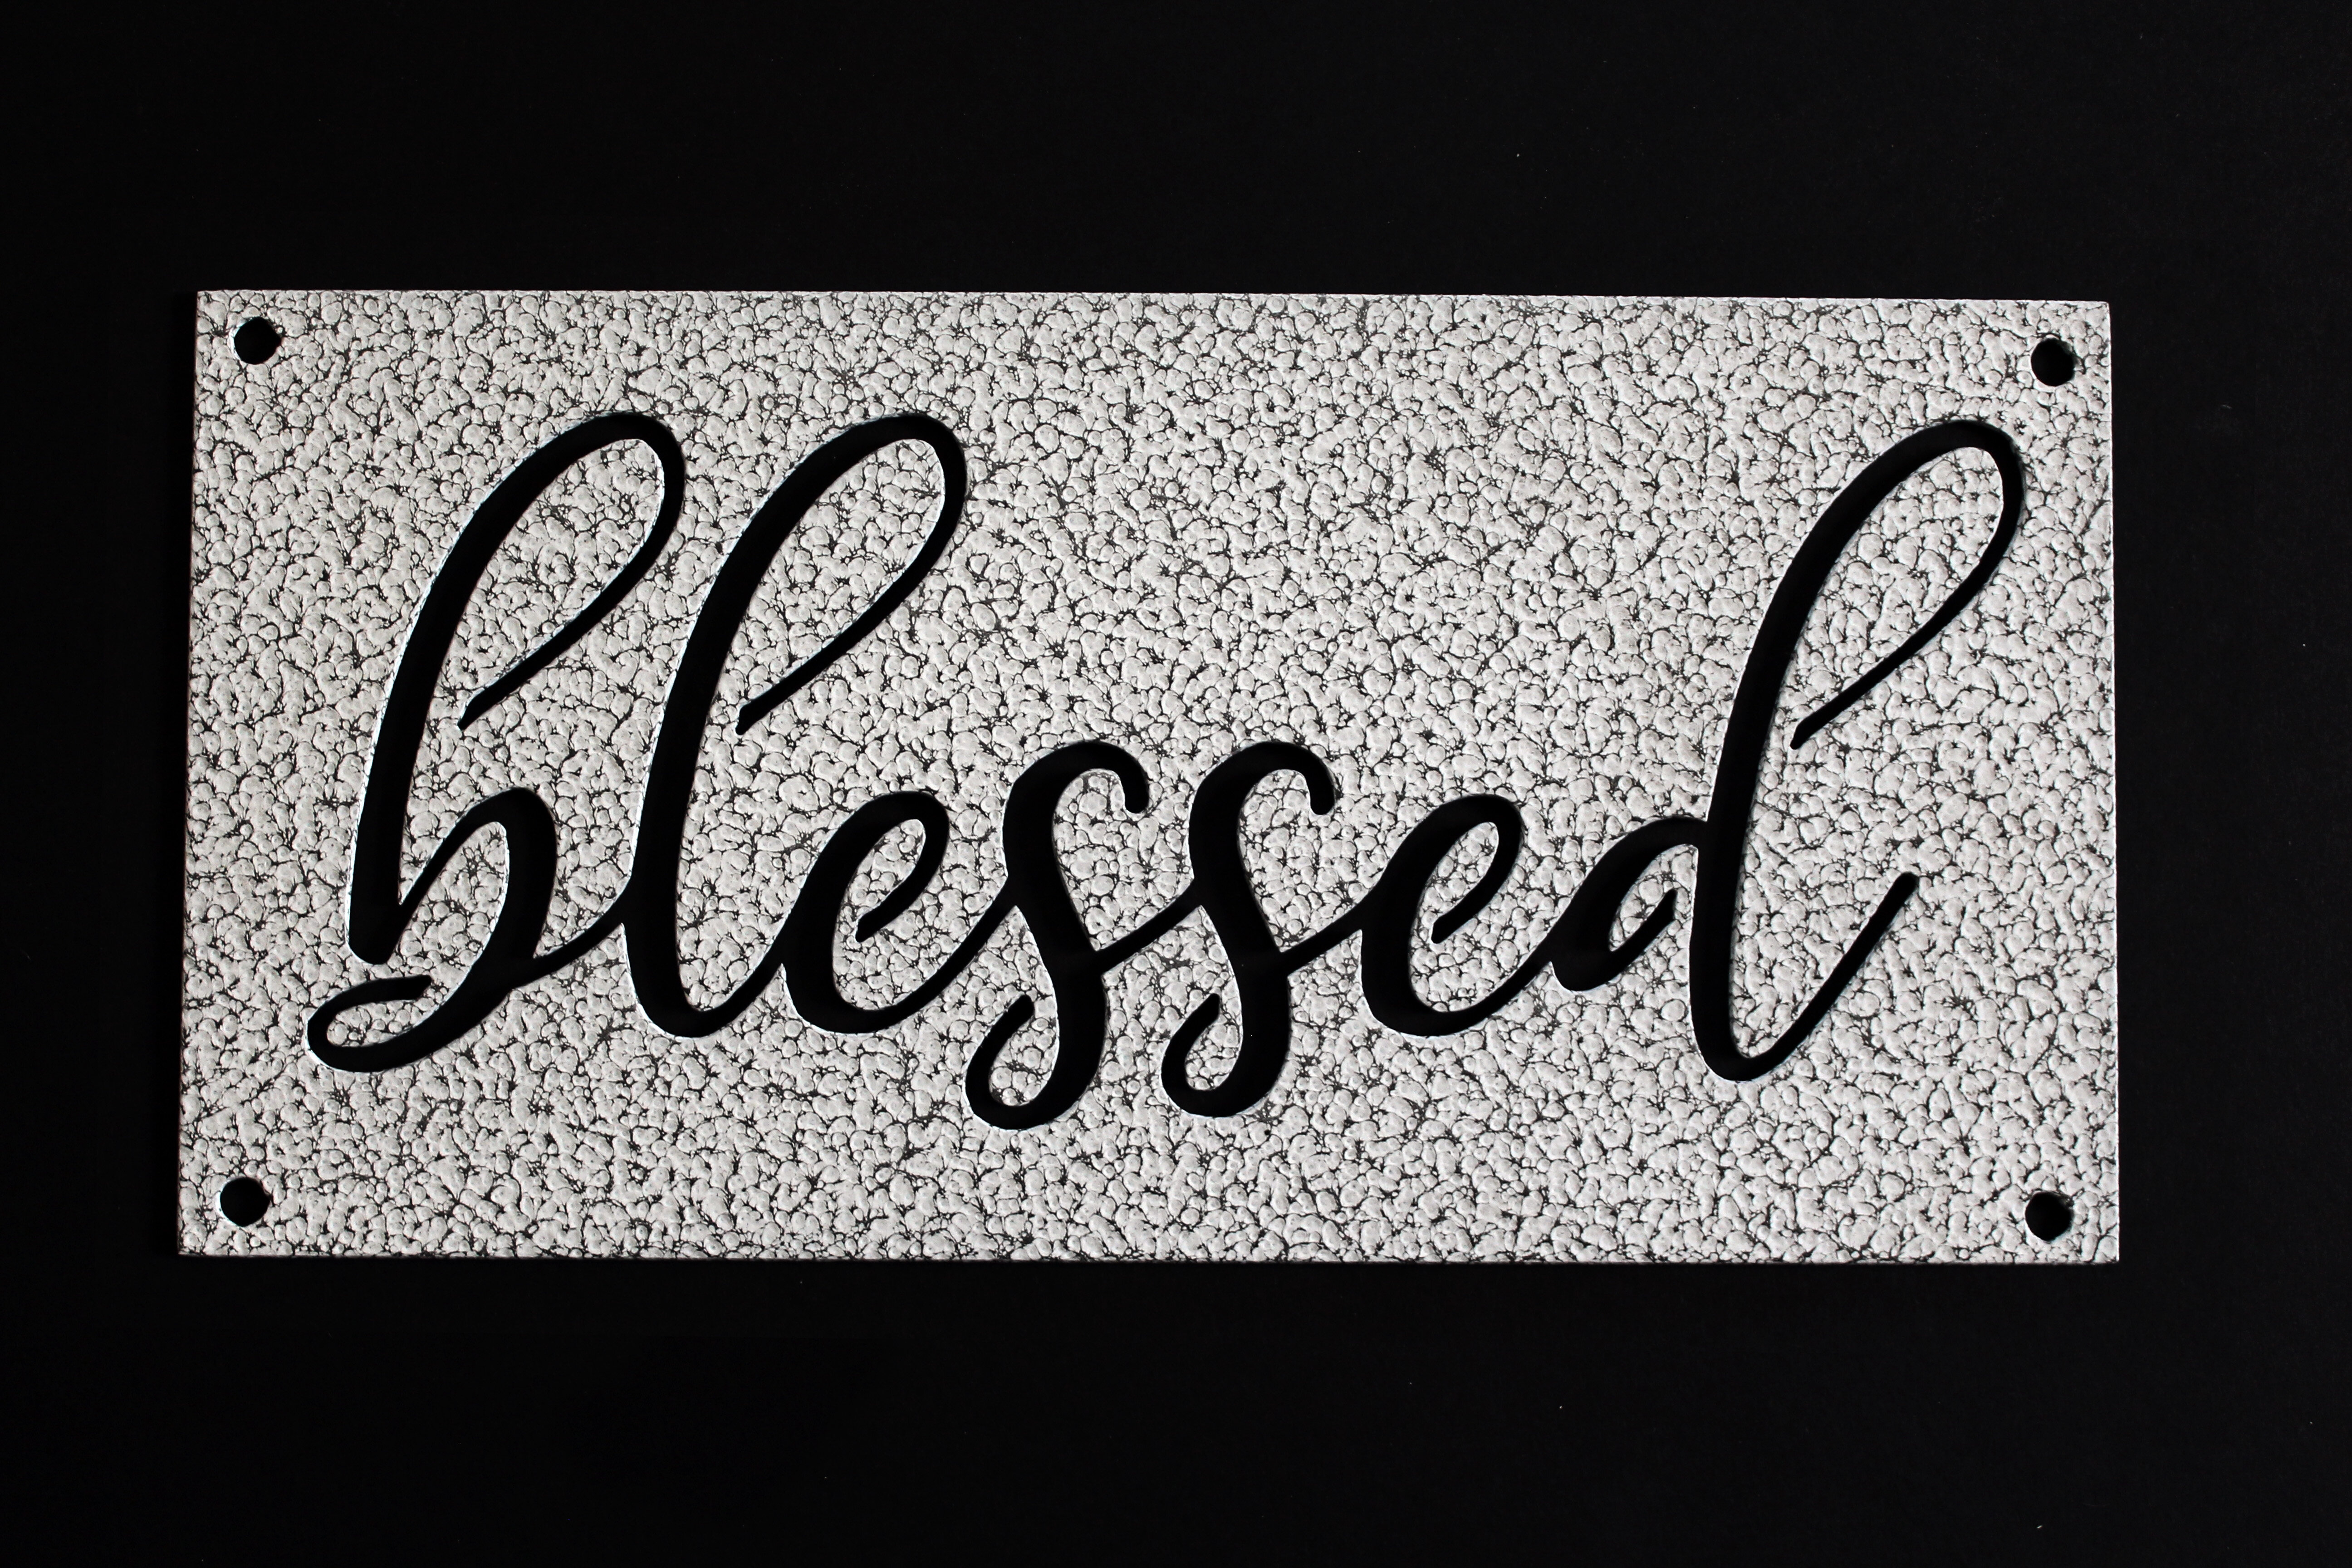 Blessed Wall Decor   Wayfair Intended For Blessed Steel Wall Decor (View 17 of 30)